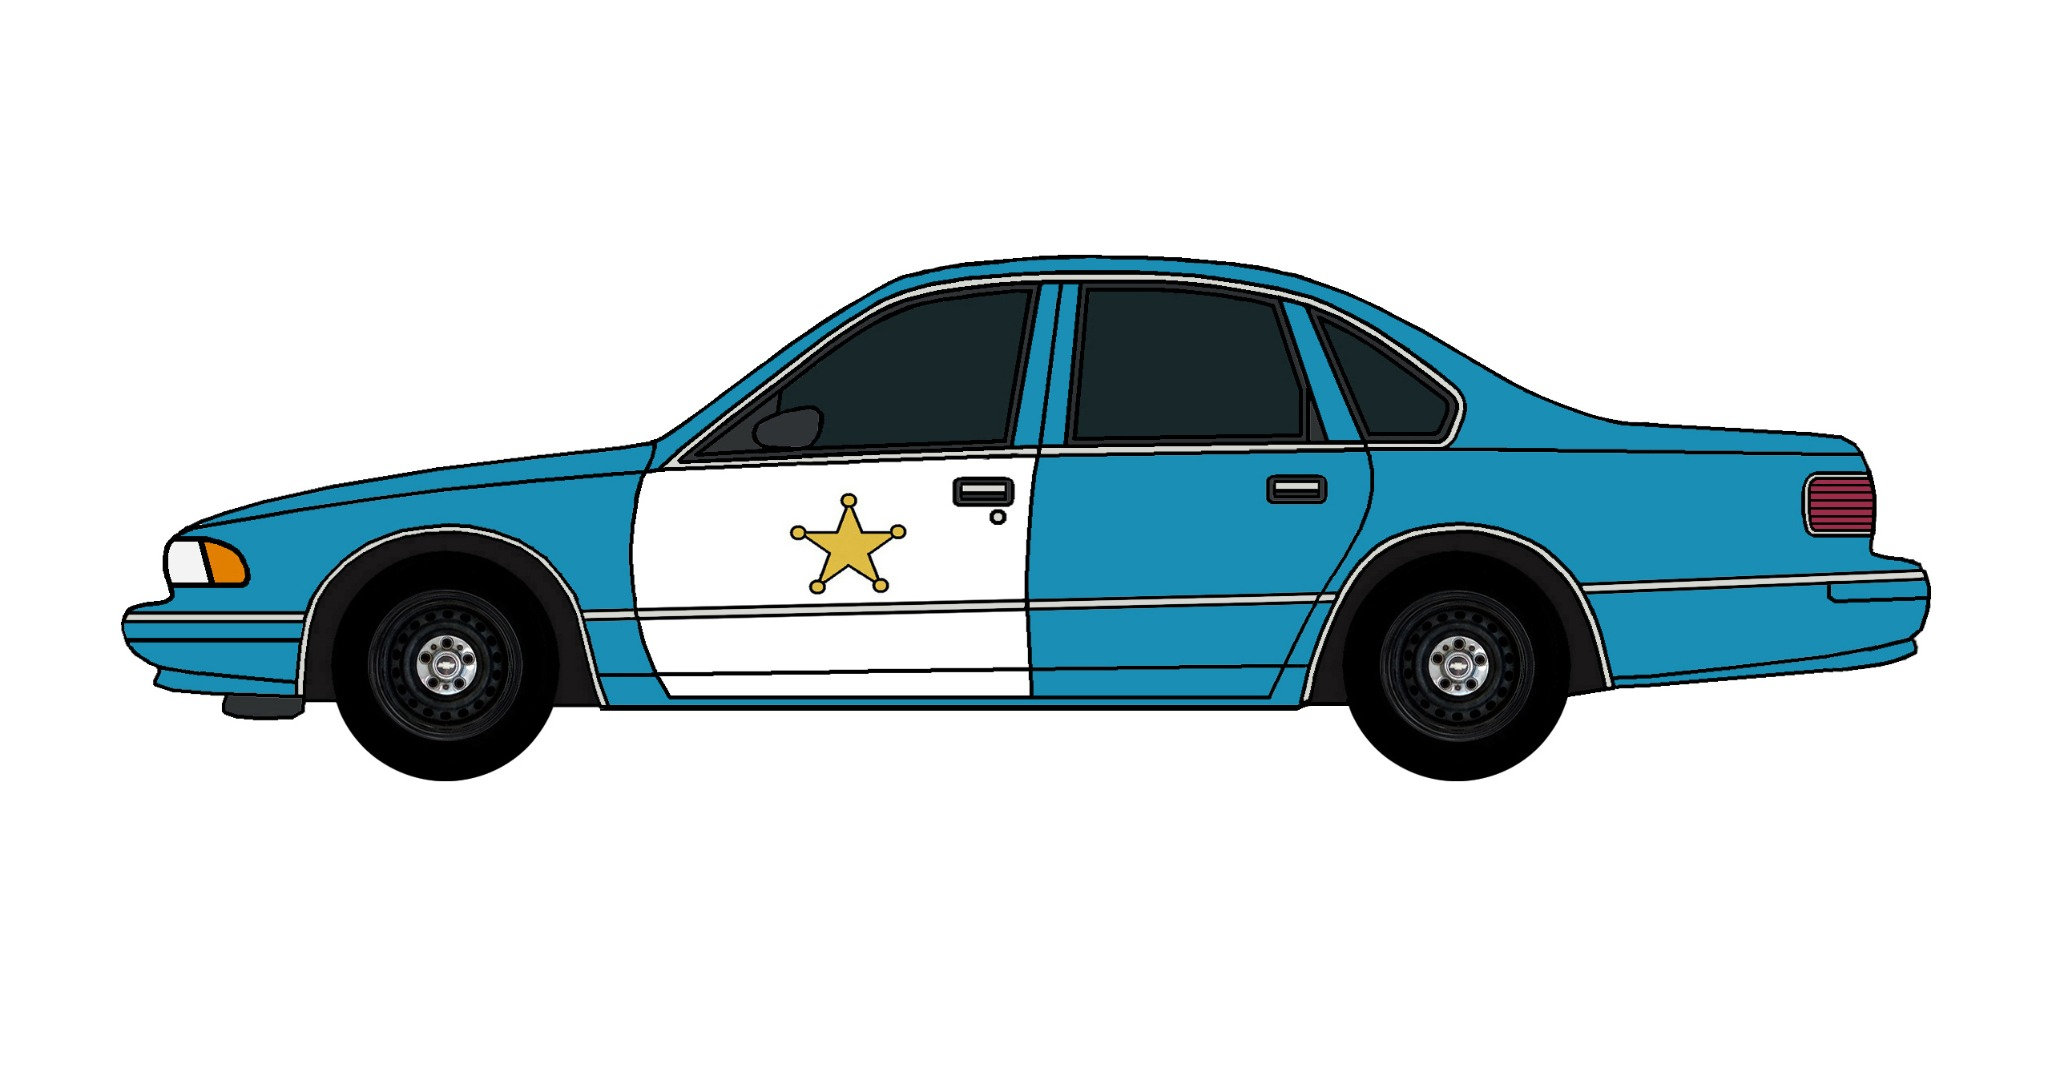 1995 Chevy Caprice Police Car SEA BLUE